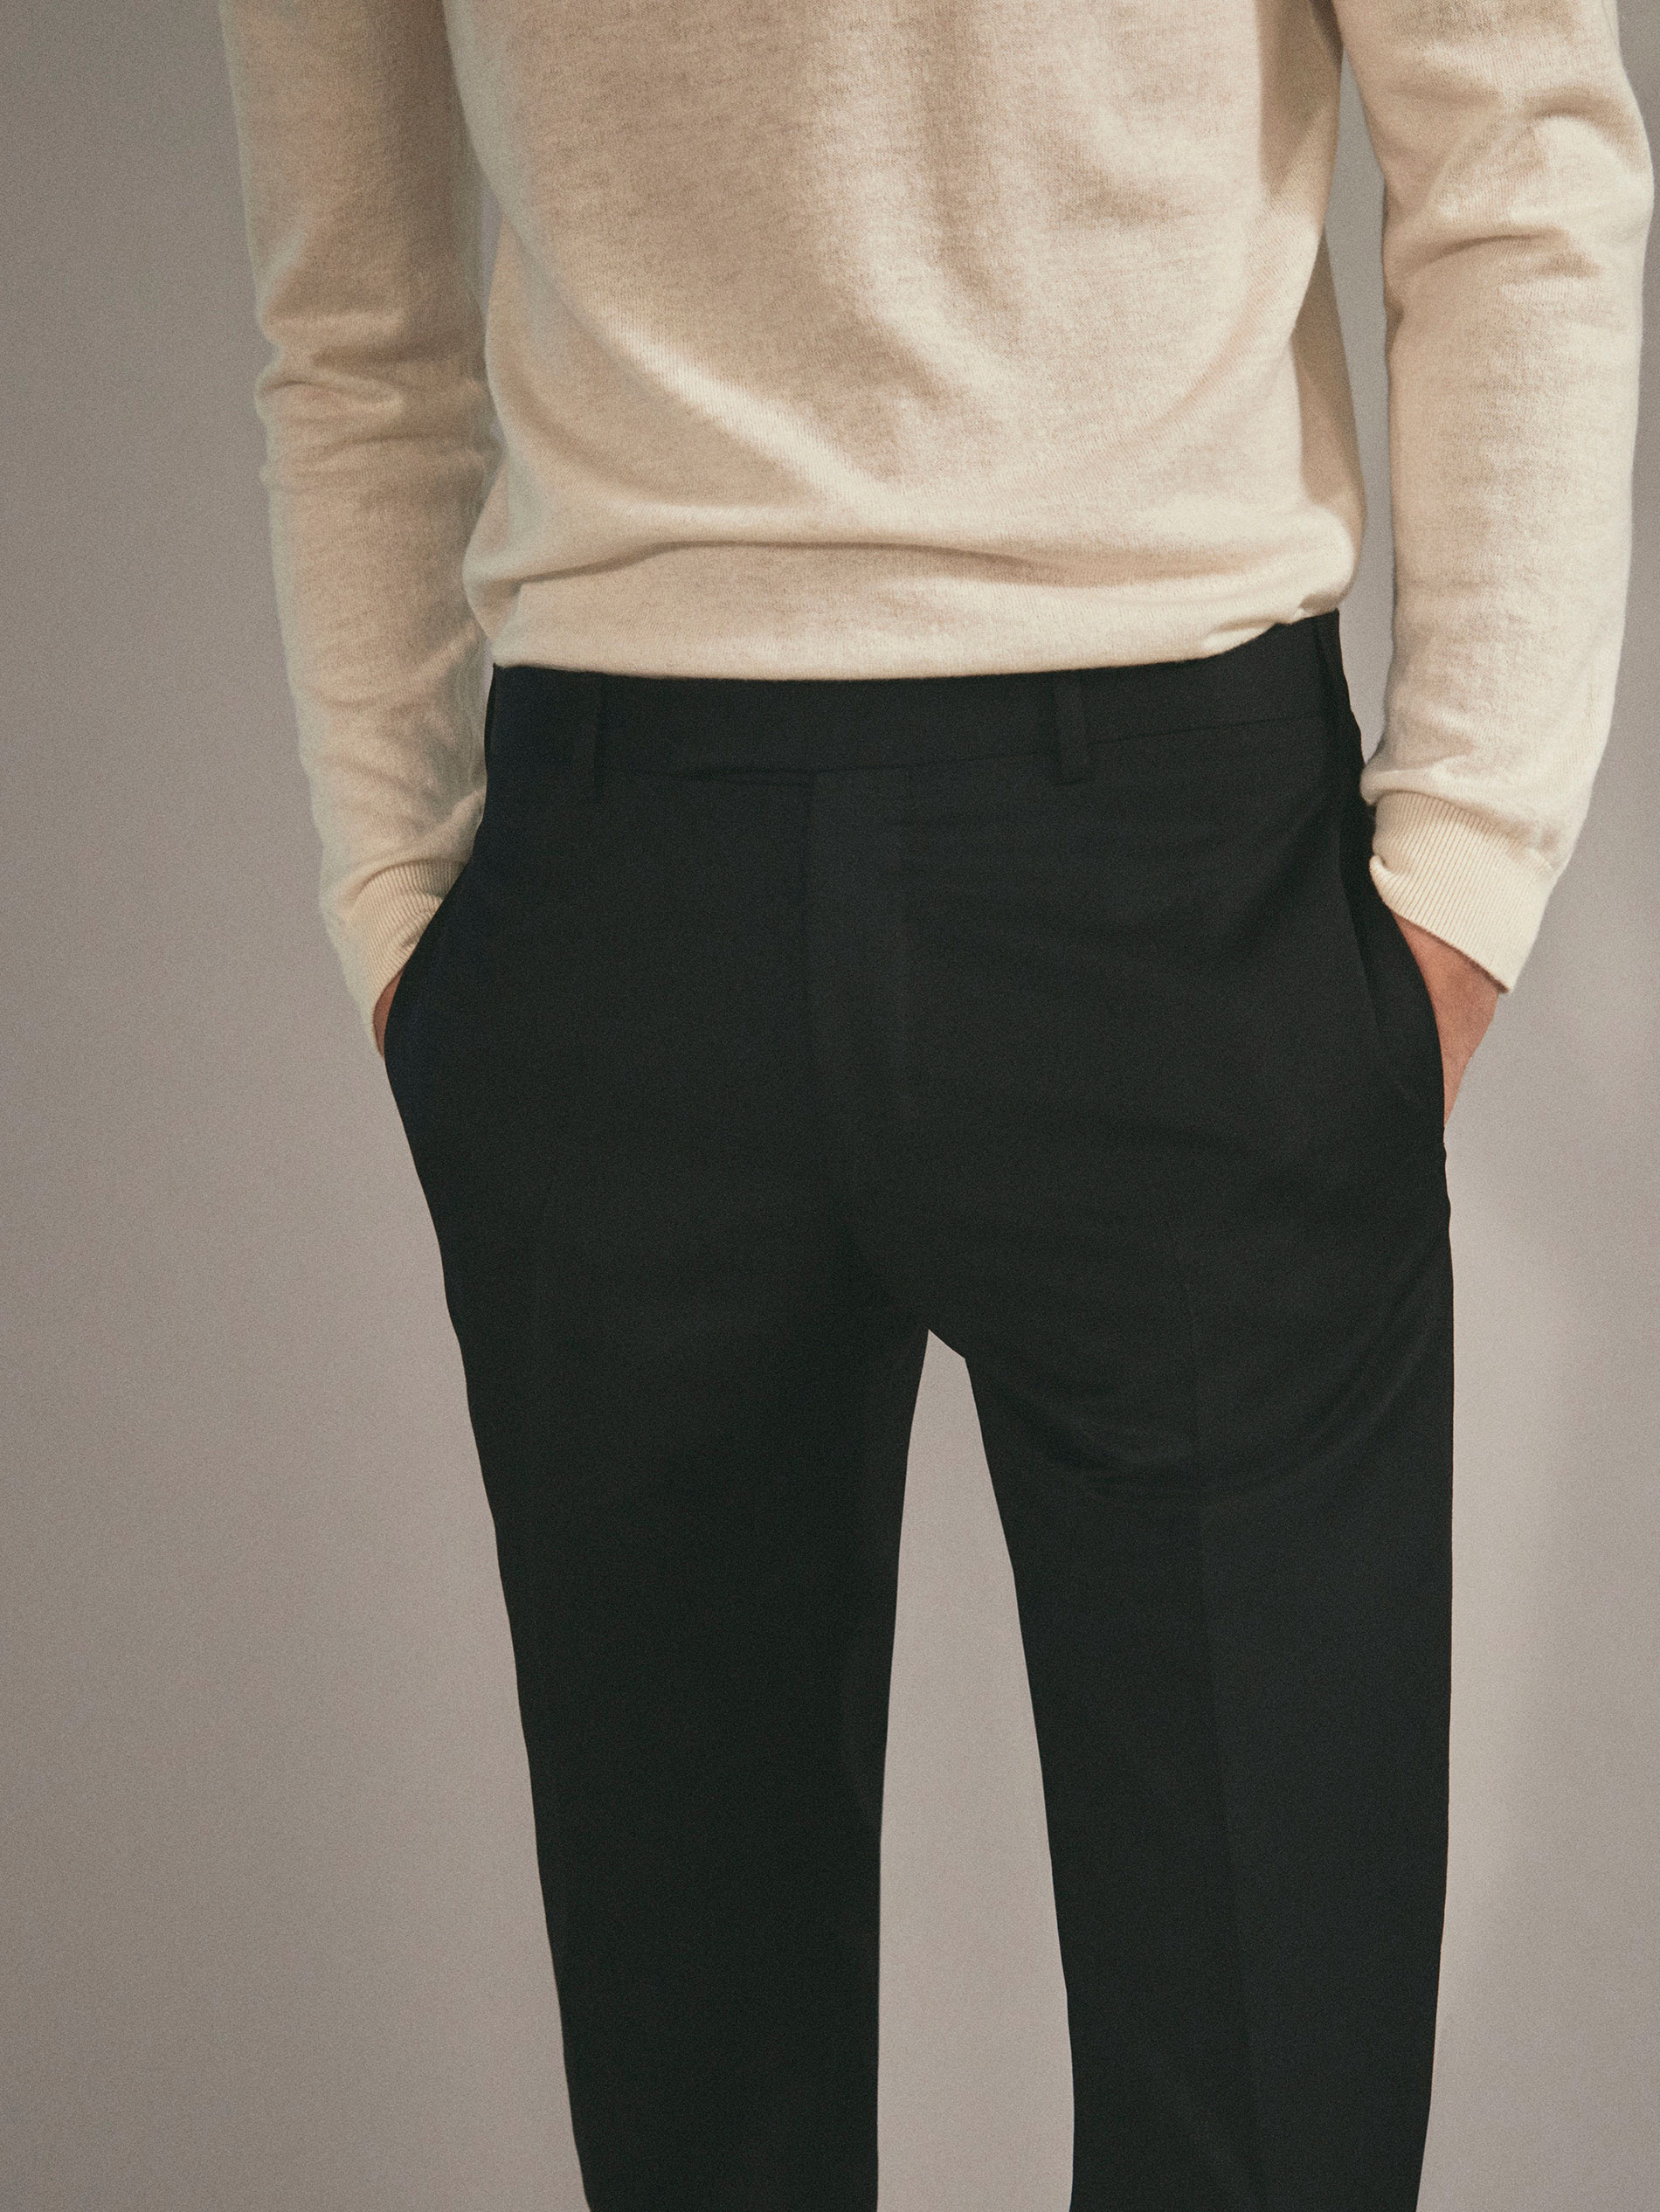 Collection Pantalons Hommes Jeans Dutti Massimo 7Zgxqw